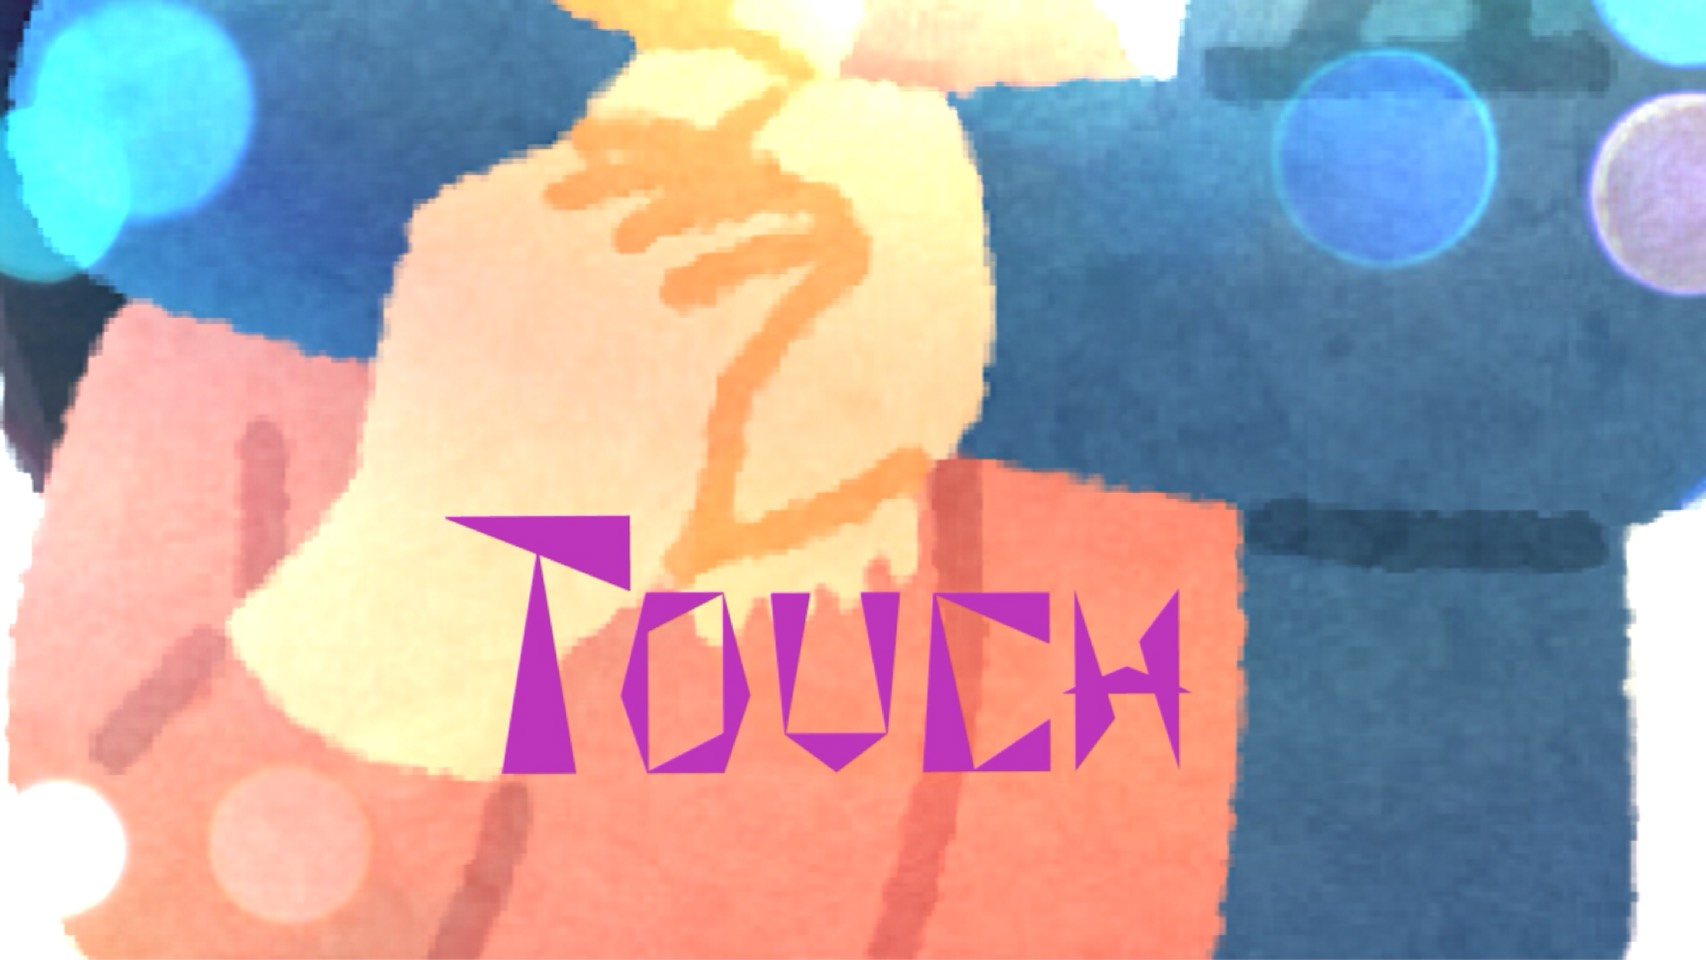 「Touch」のイメージ